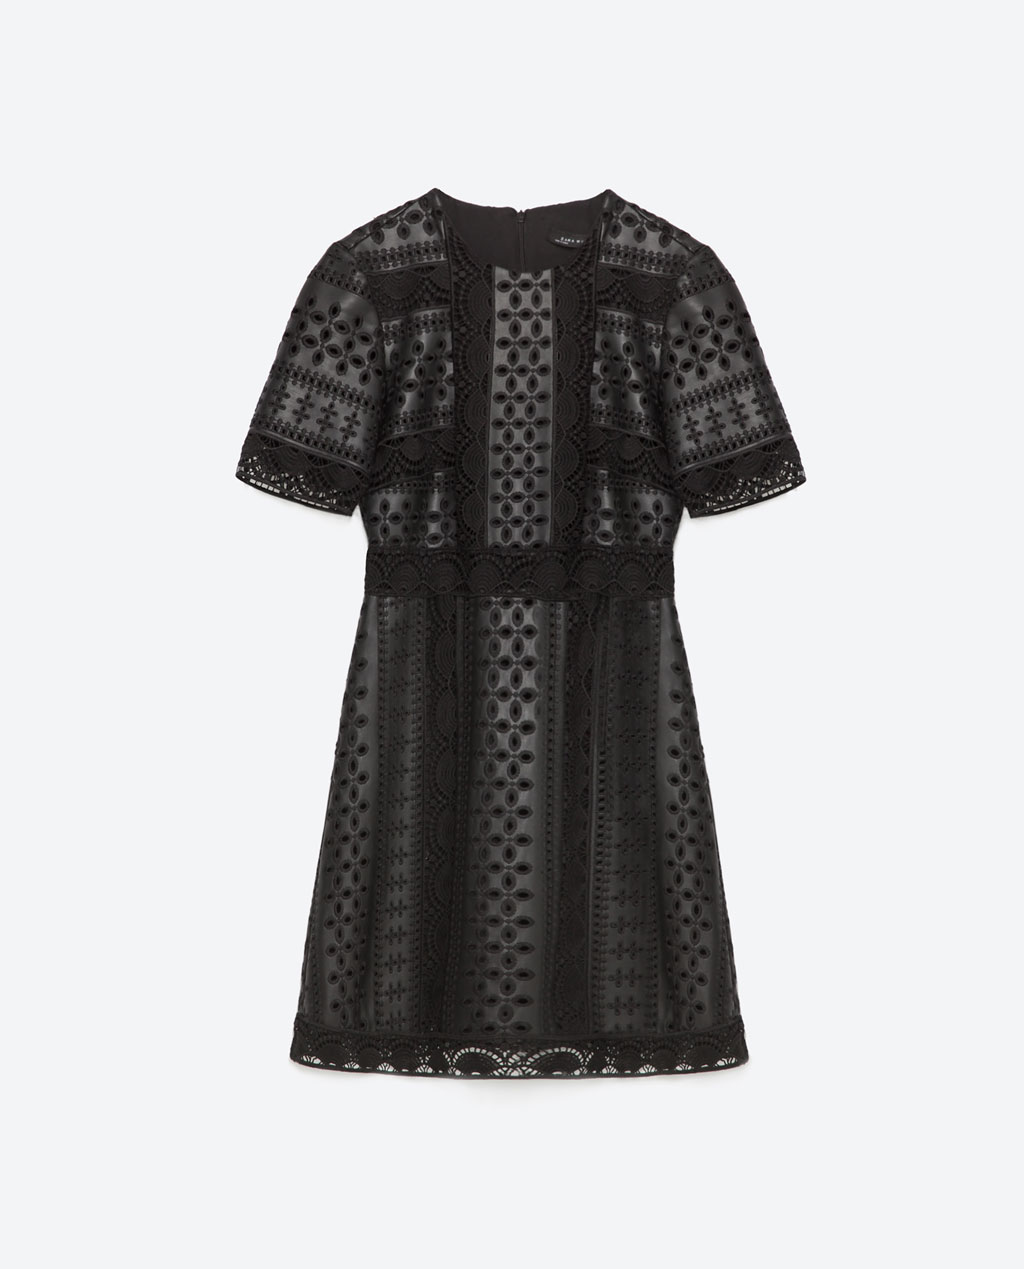 Zara - EMBROIDERED DRESS 59.99